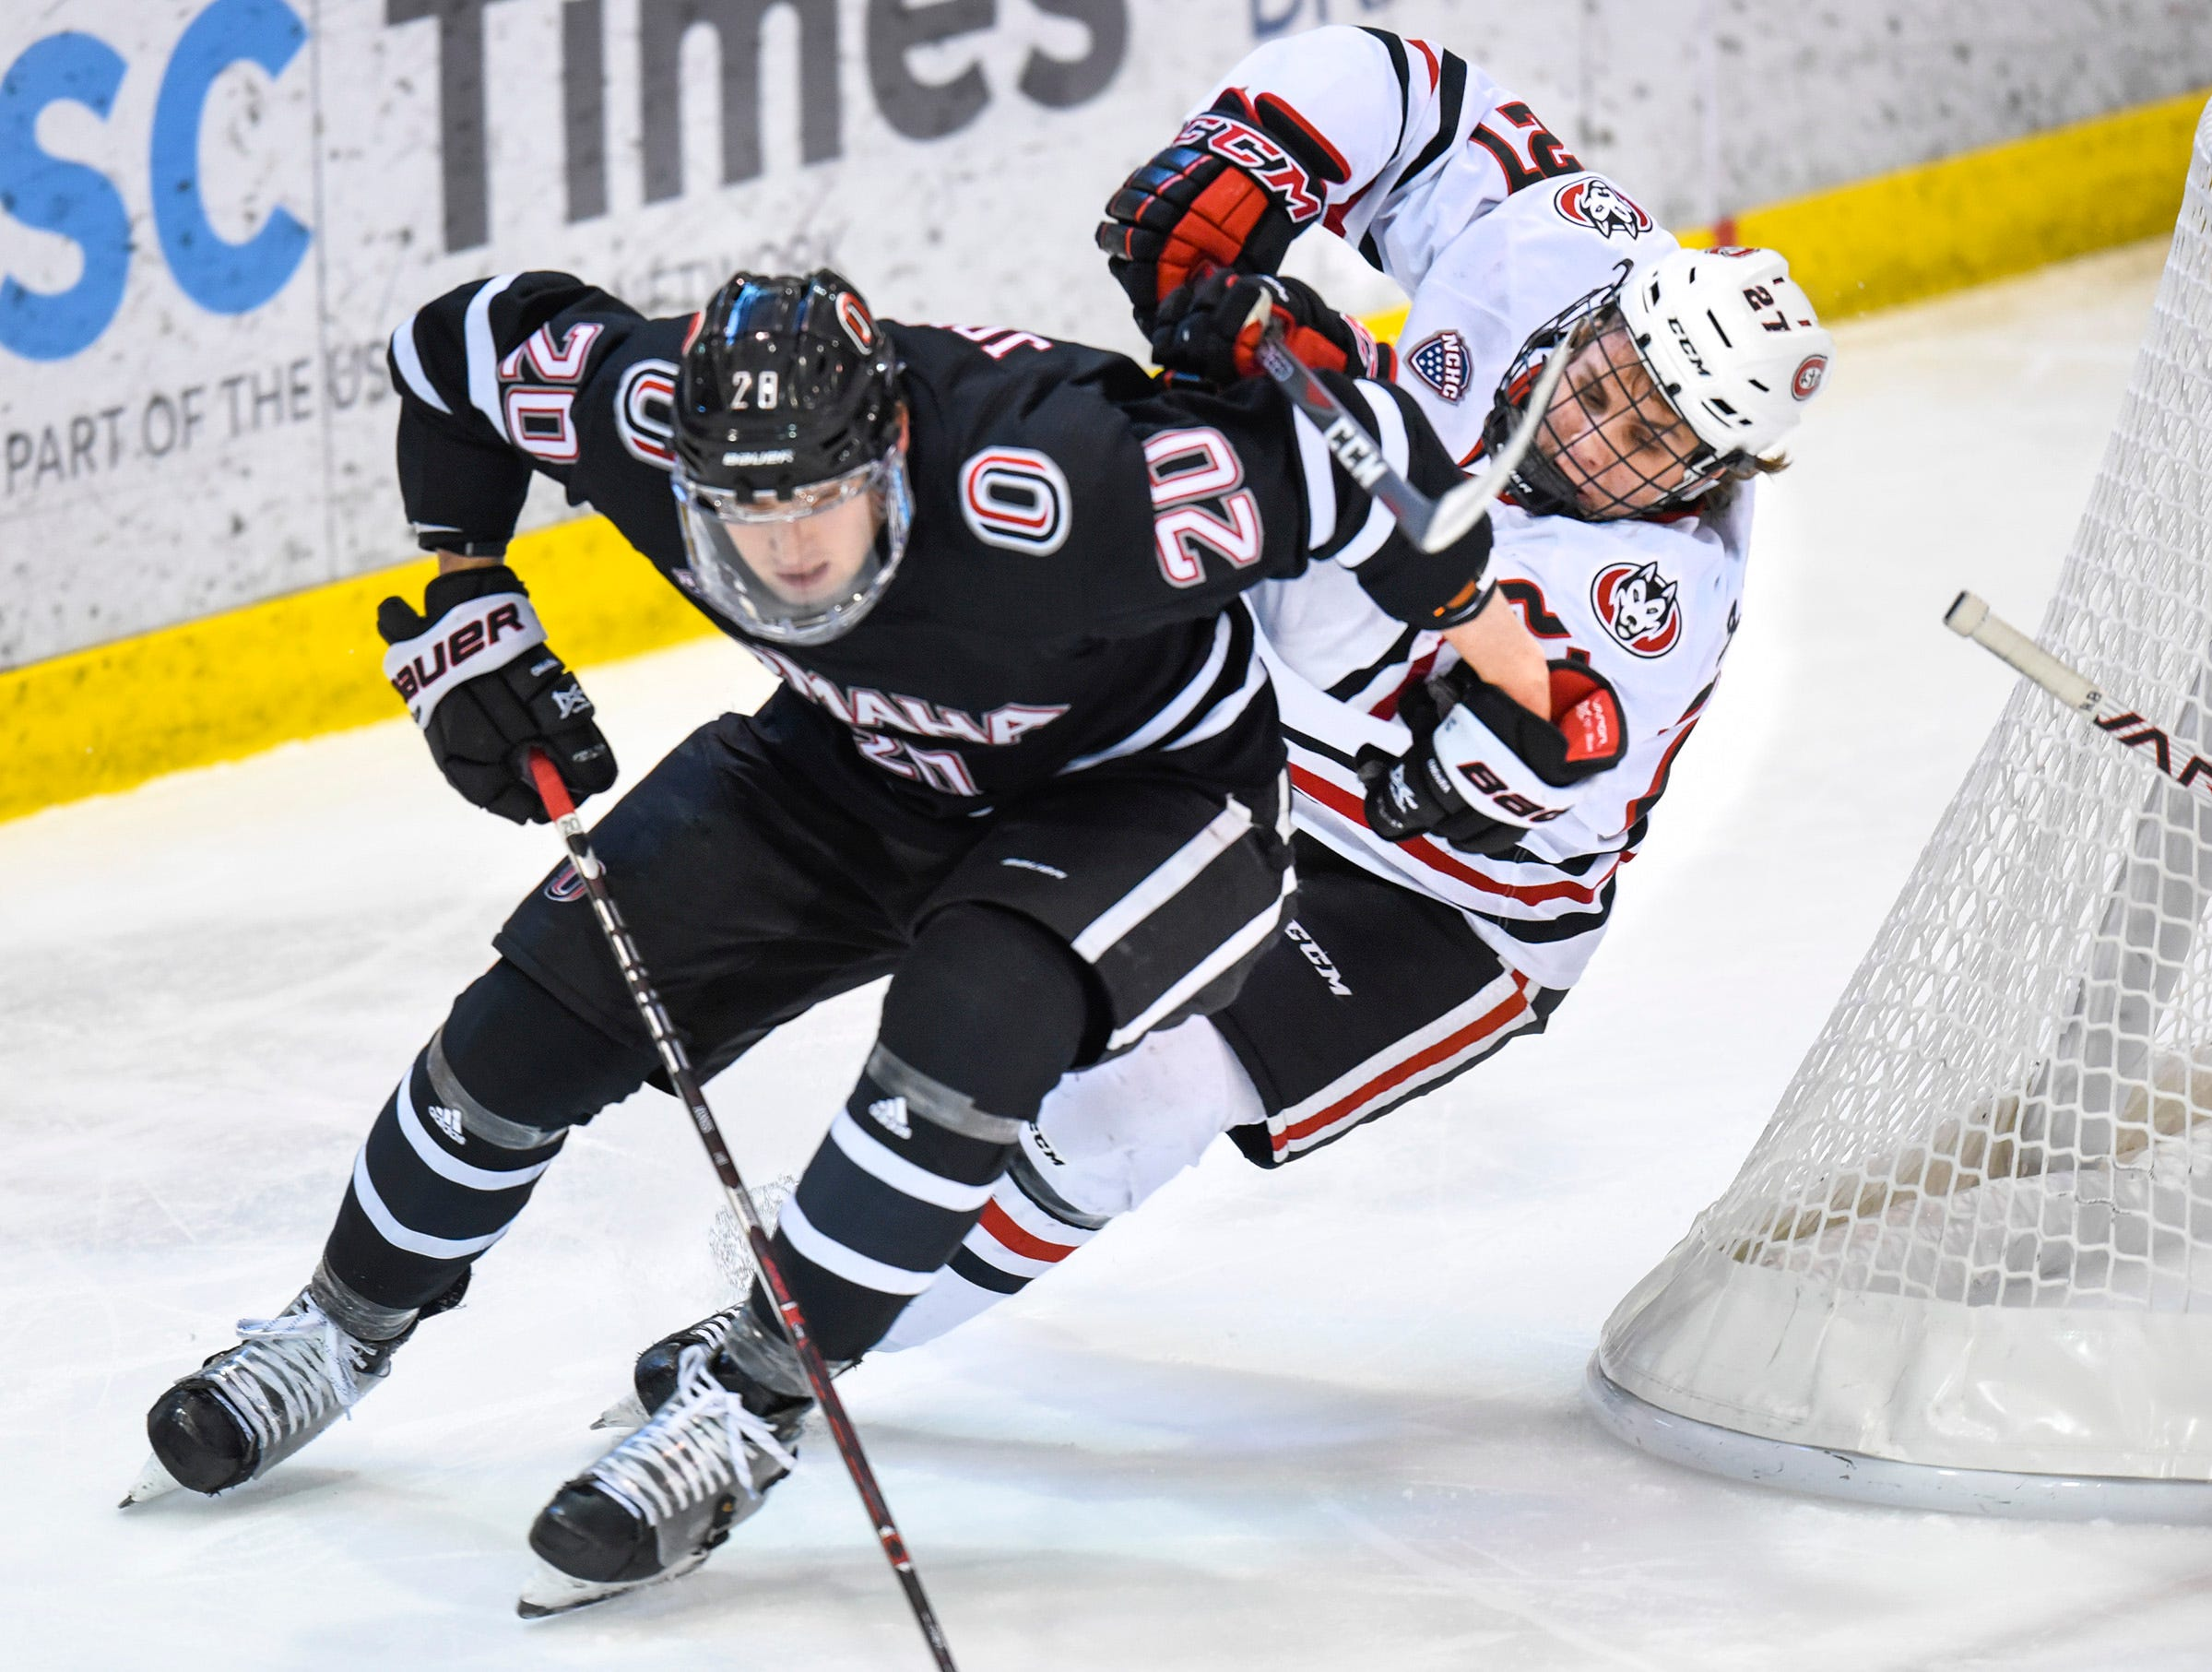 St. Cloud State's Blake Lizotte tries to get the puck from Nebraska-Omaha's Ryan Jones during the first period Saturday, Dec. 8, at the Herb Brooks National Hockey Center.